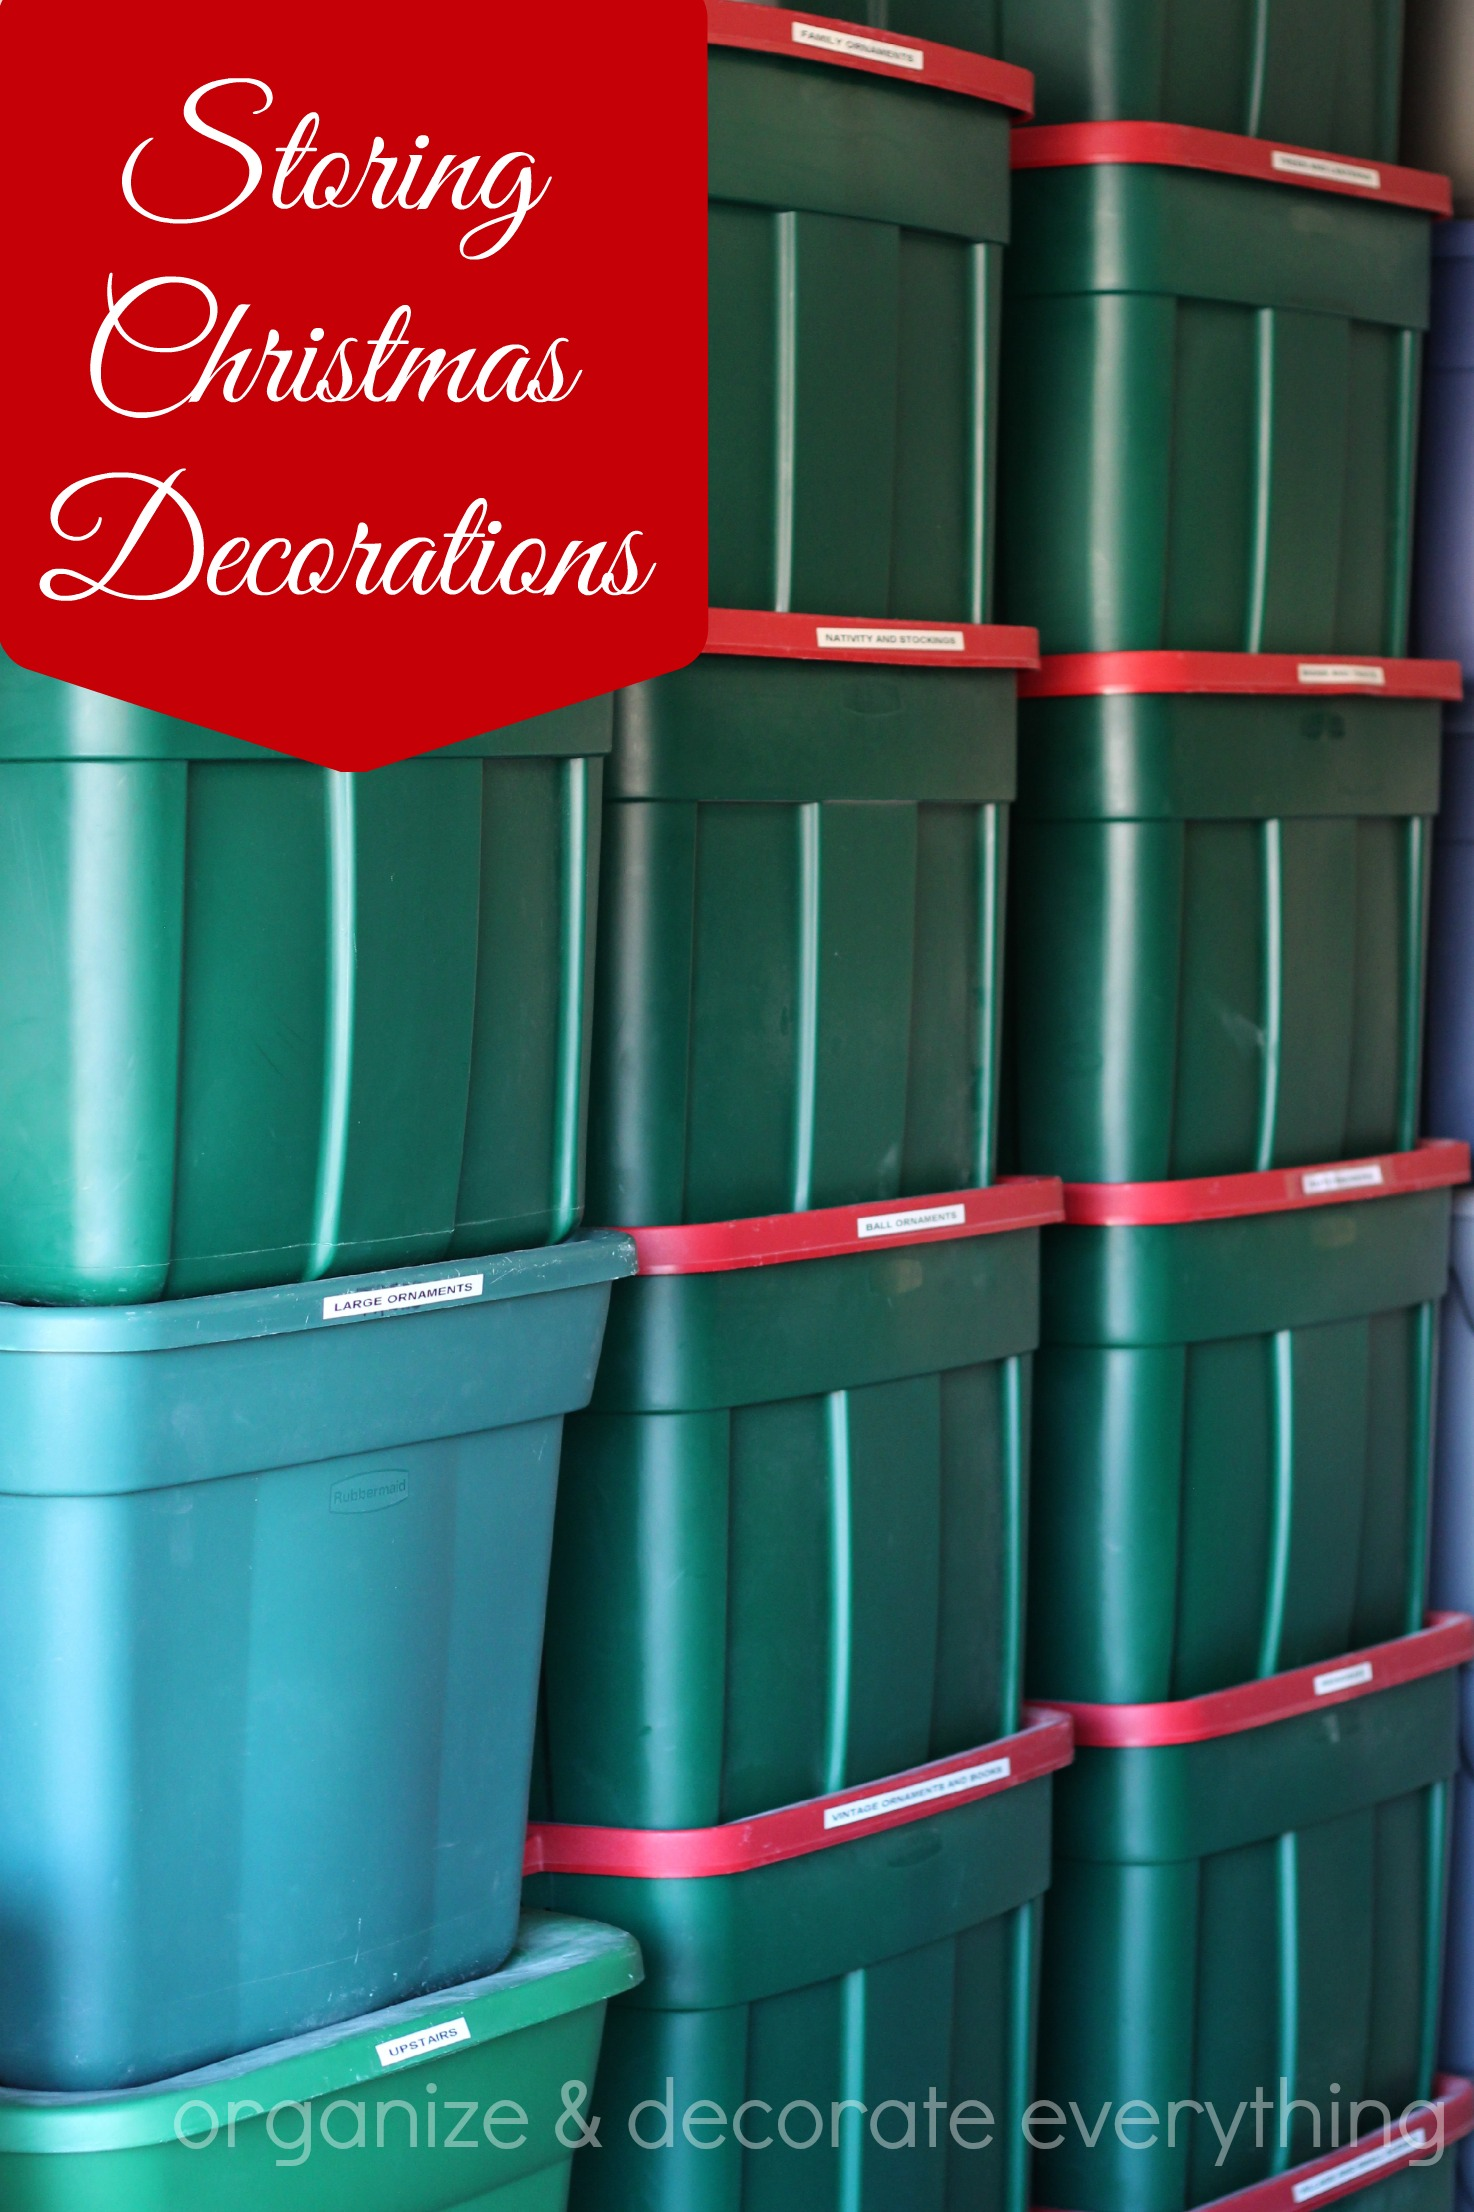 Storage For Christmas Decorations Storing Christmas Decorations Organize And Decorate Everything